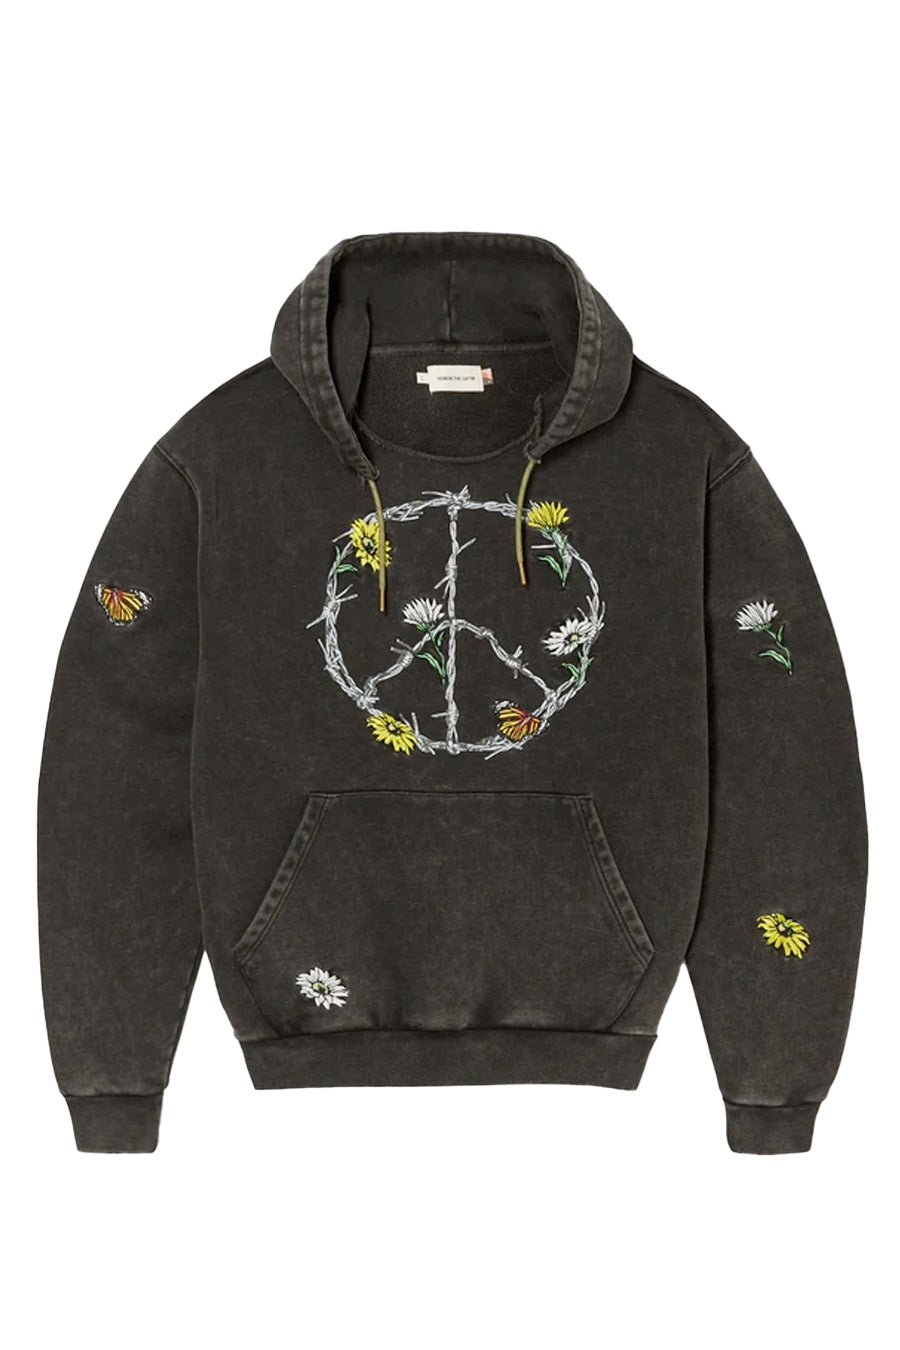 Honor the. Gift - Black Iron Peace Hoodie | 1032 SPACE